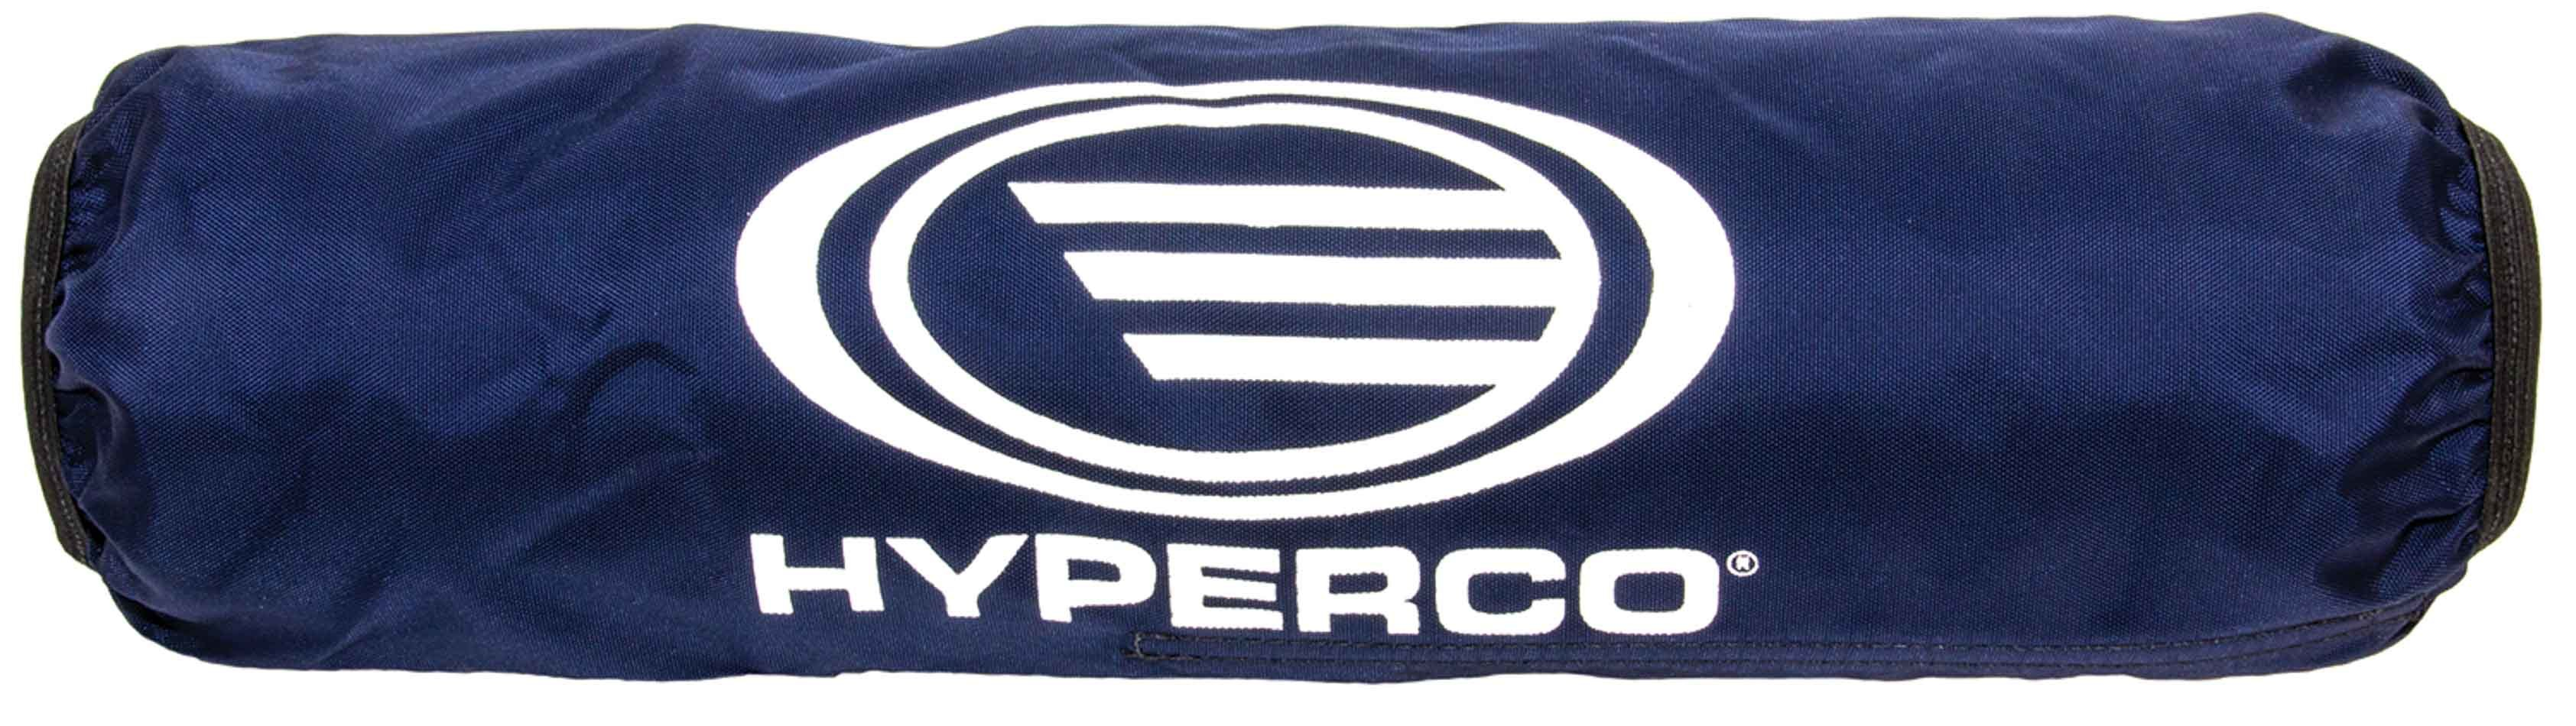 Hyperco 1101-16B Coil-Over Cover, Coil-Spring Bags, Heat / UV / Water Resistant, Washable, Elastic Ends, Hook and Loop Closure, Hyperco Logo, Polyester, Navy Blue, Hyperco 16 in FL / B Series Springs, Each